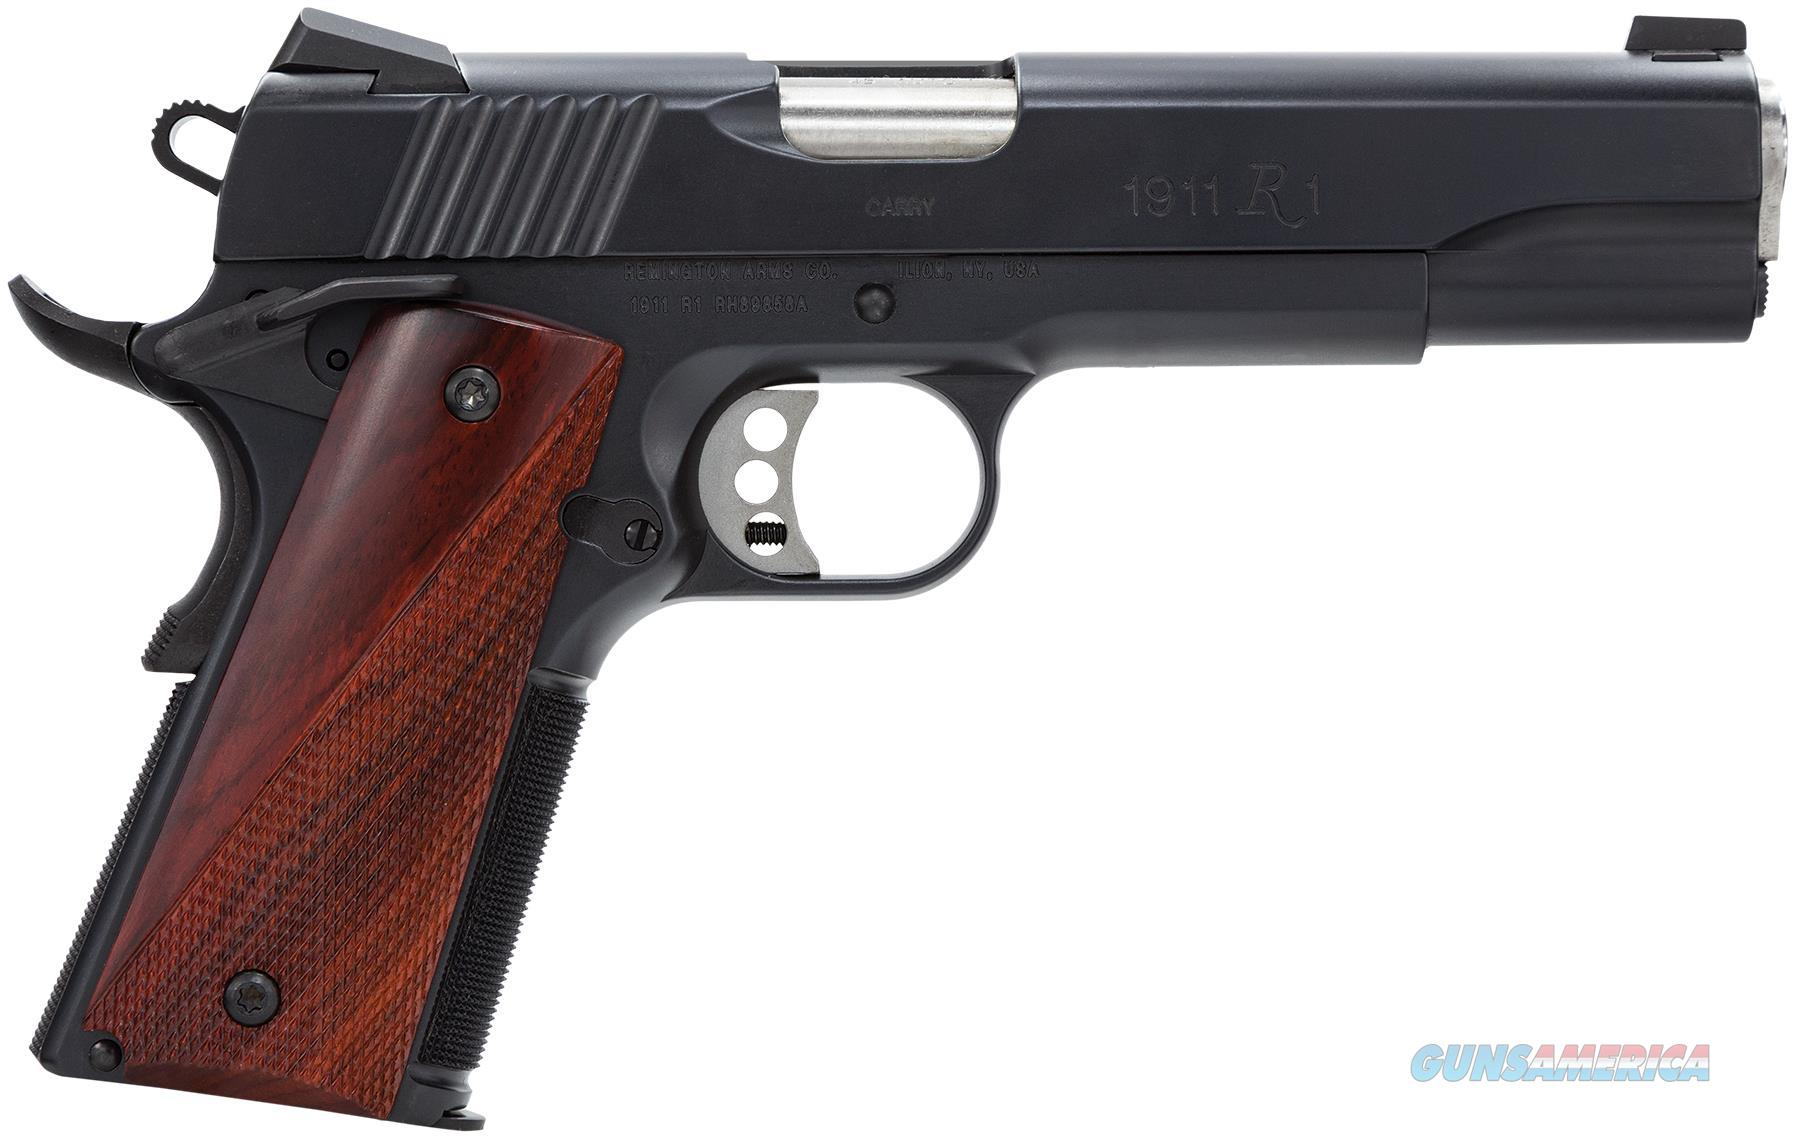 "REMINGTON 1911 45ACP 5"" CARRY 96332  Guns > Pistols > Remington Pistols - Modern > 1911"